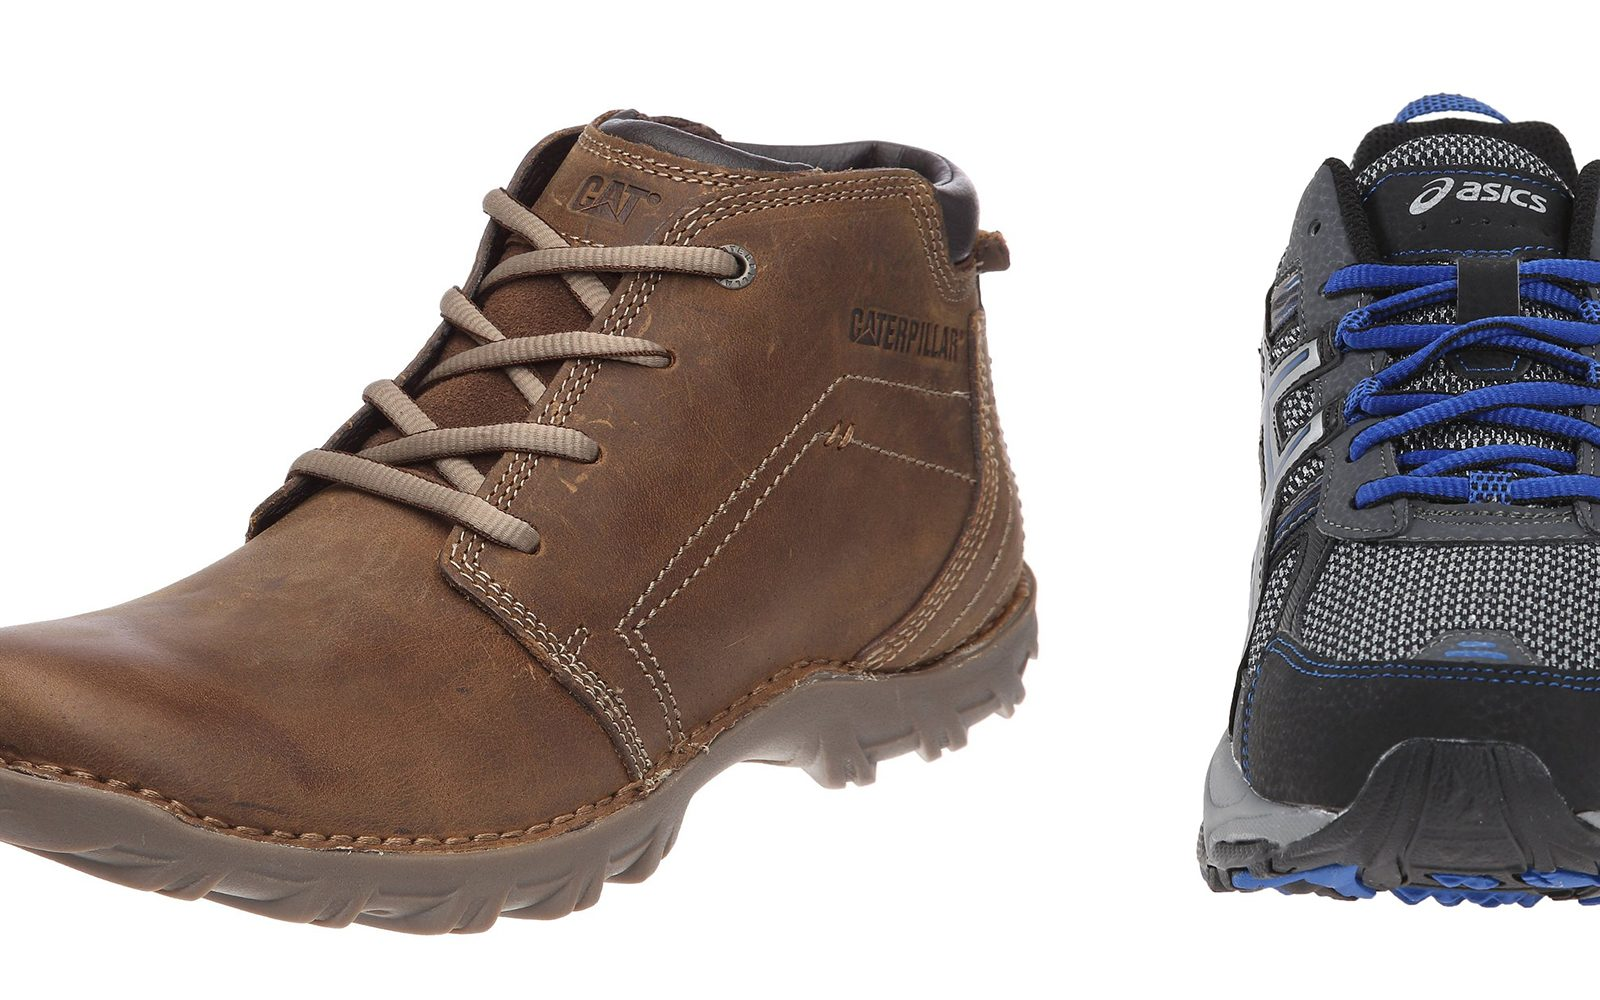 f40a269ec2ec6 Fashion deals at Amazon - extra 20% off fall athletic/outdoor shoes ...